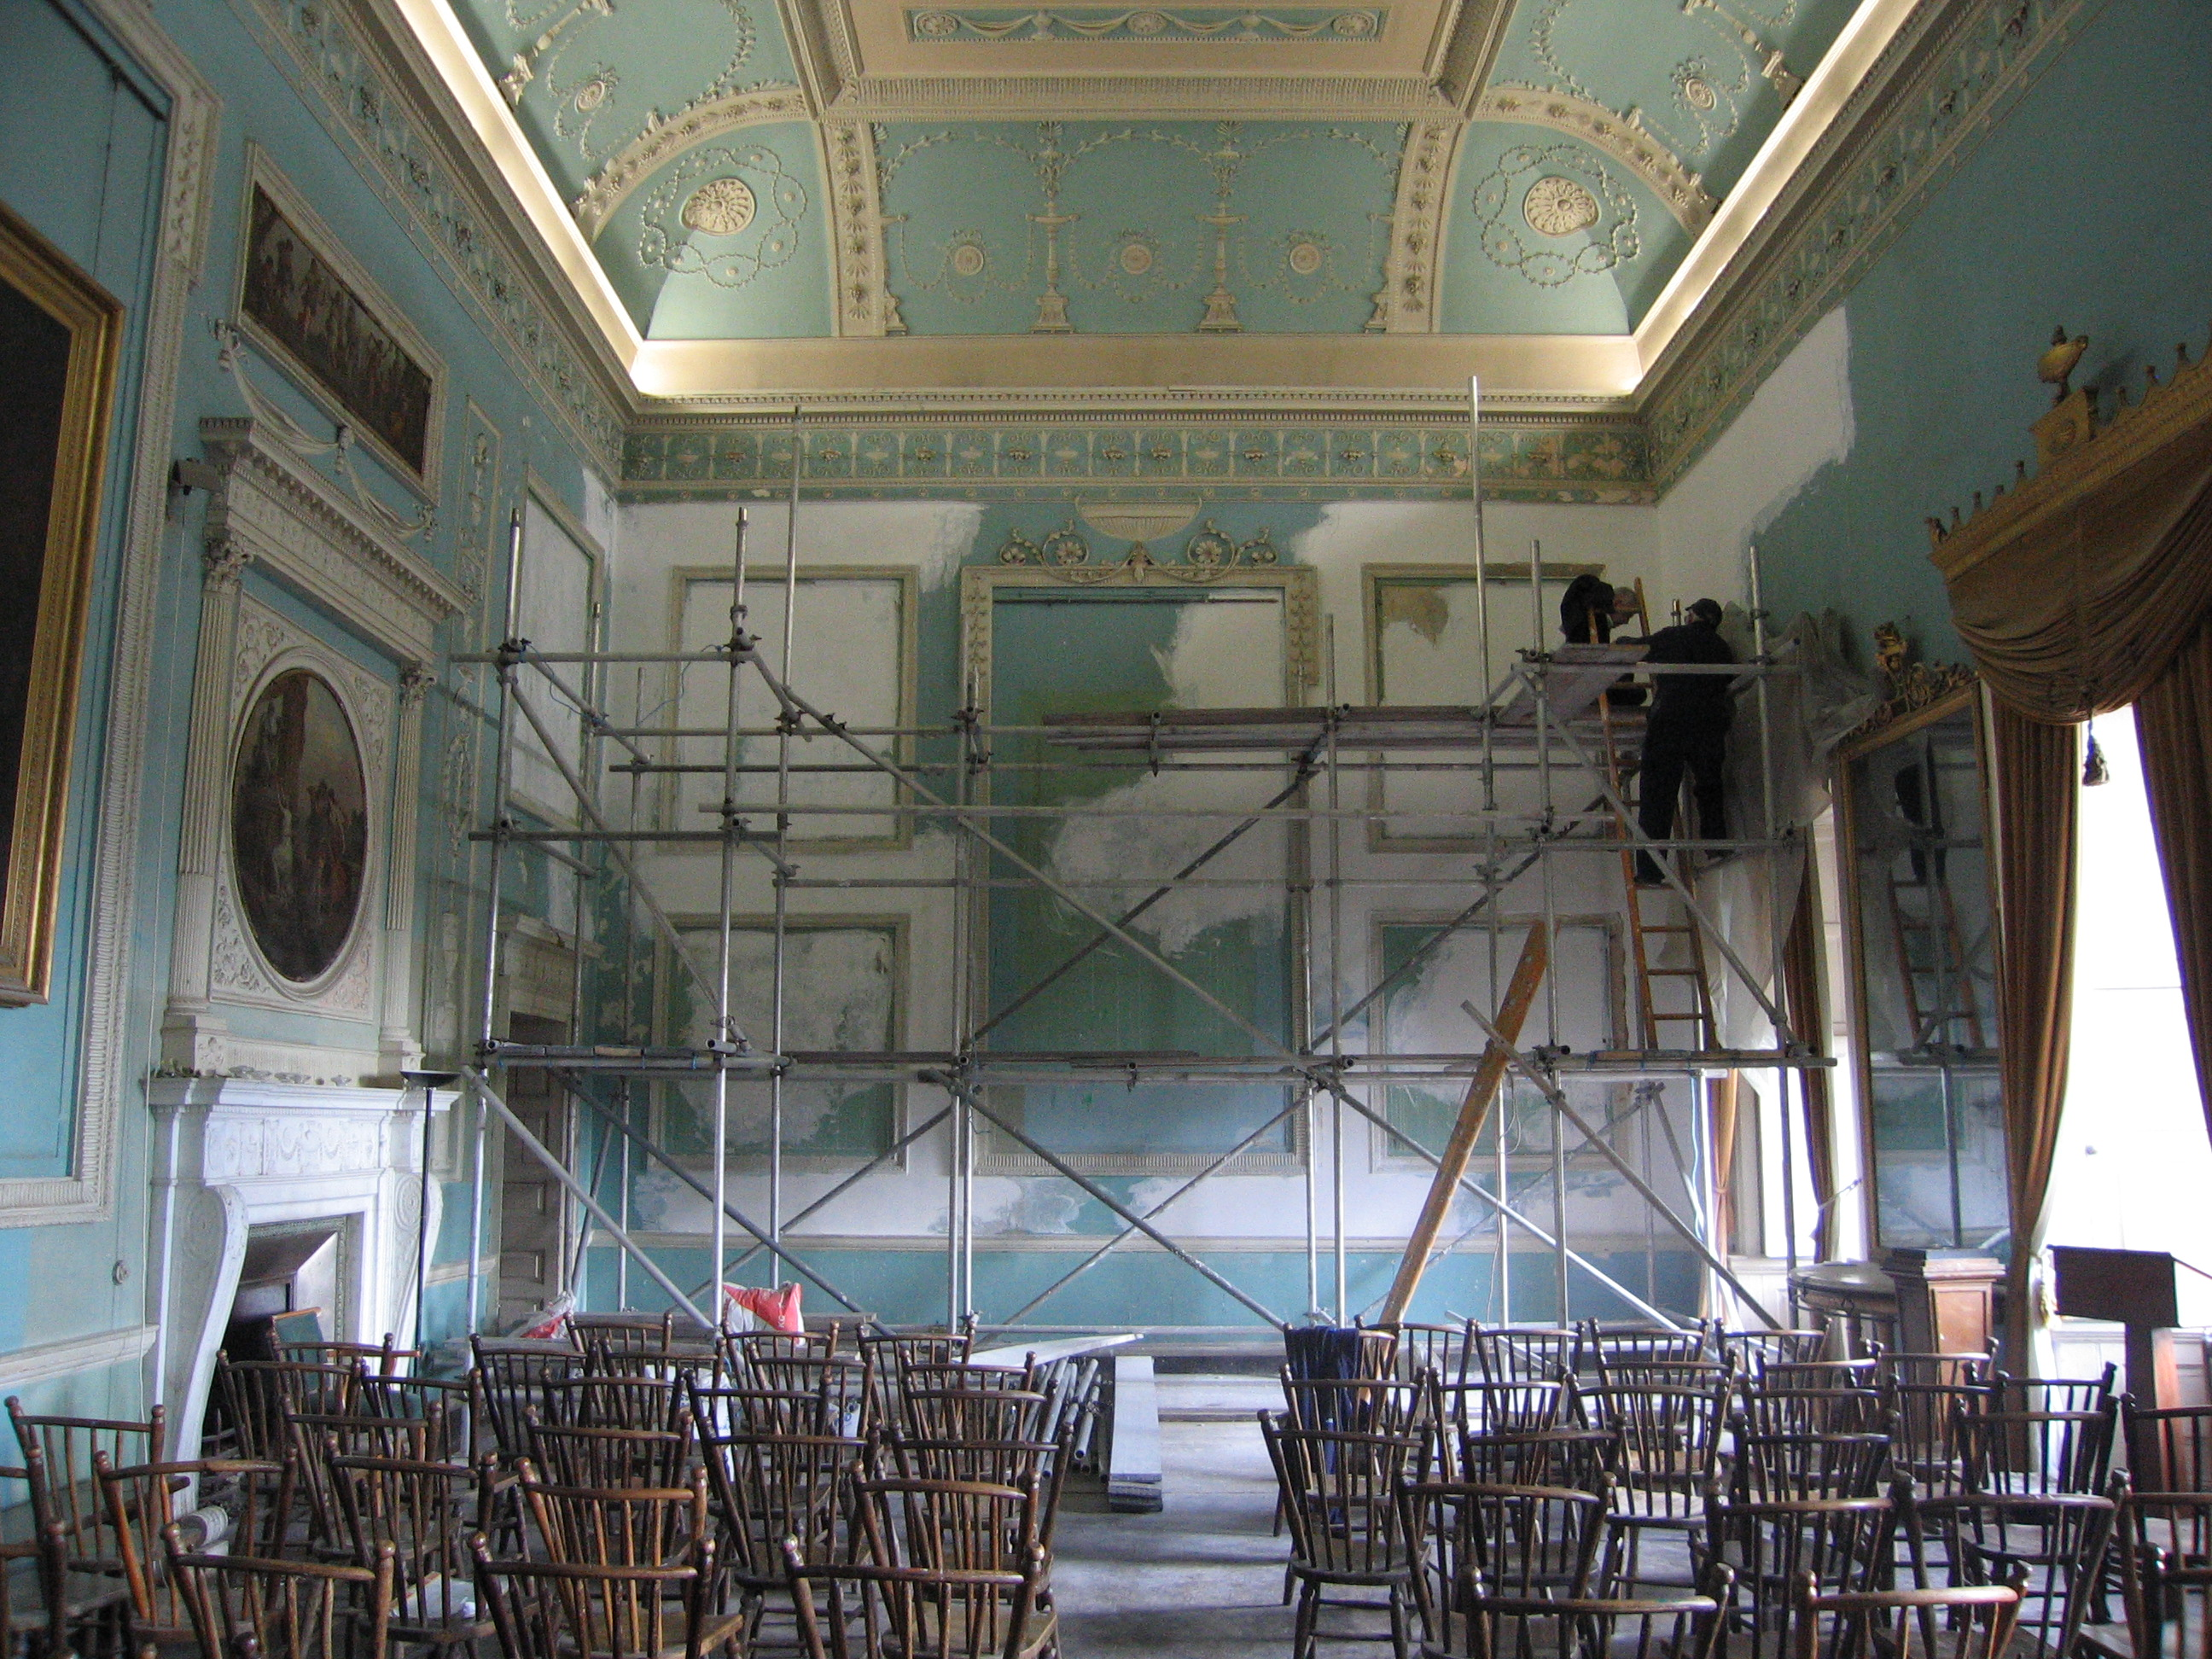 The pale blue colour of the Eating Parlour is very different to Adam's original dark green decoration